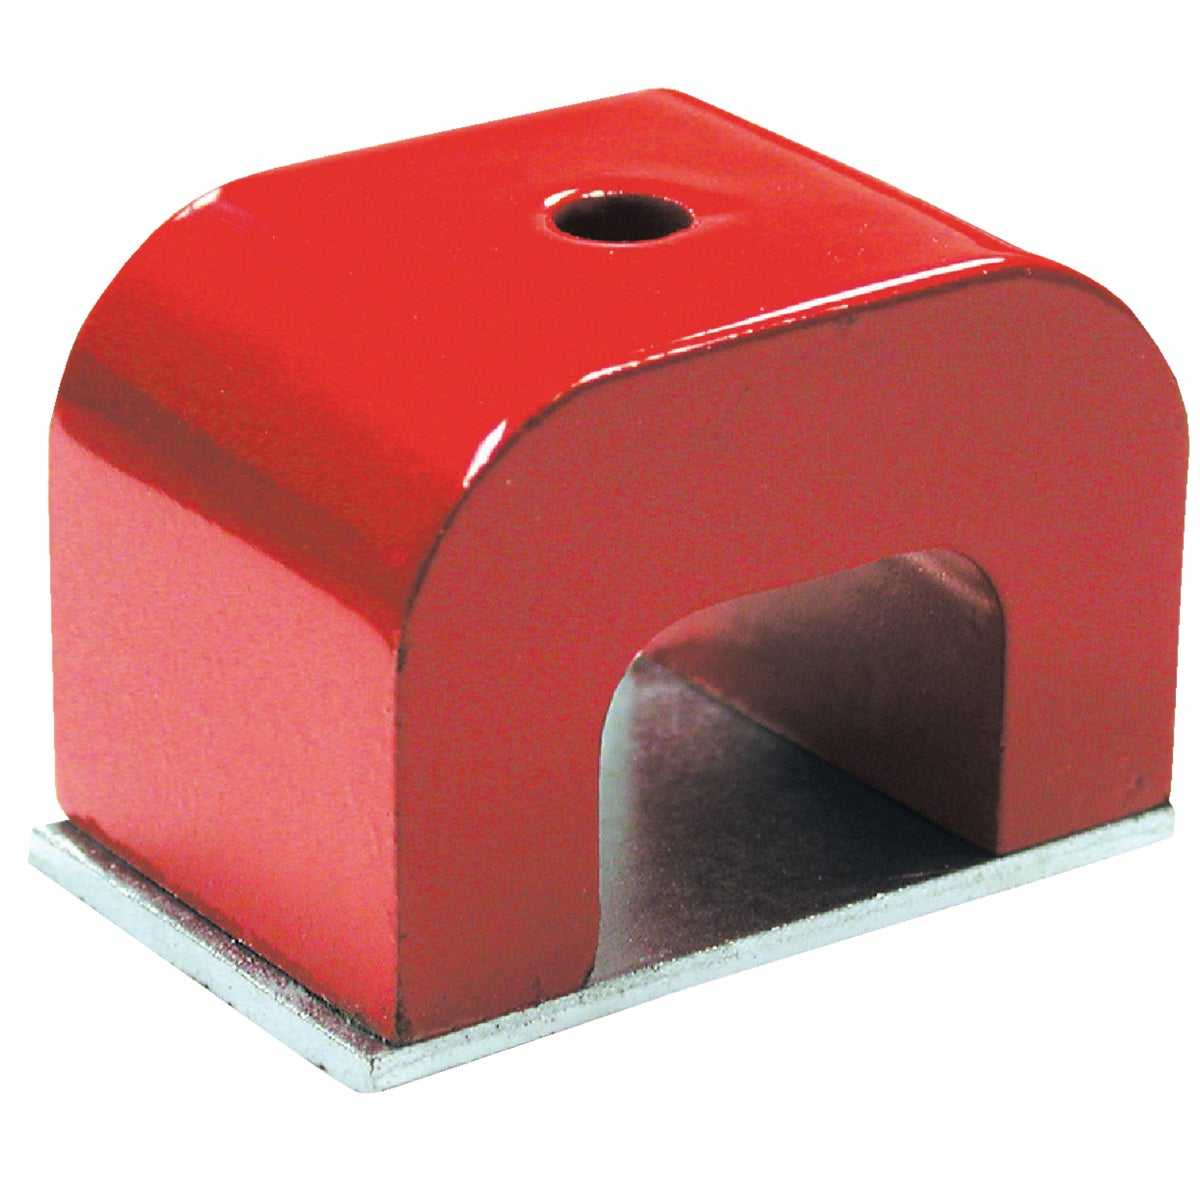 30LB HORSESHOE MAGNET - 07272 by Master Magnetics